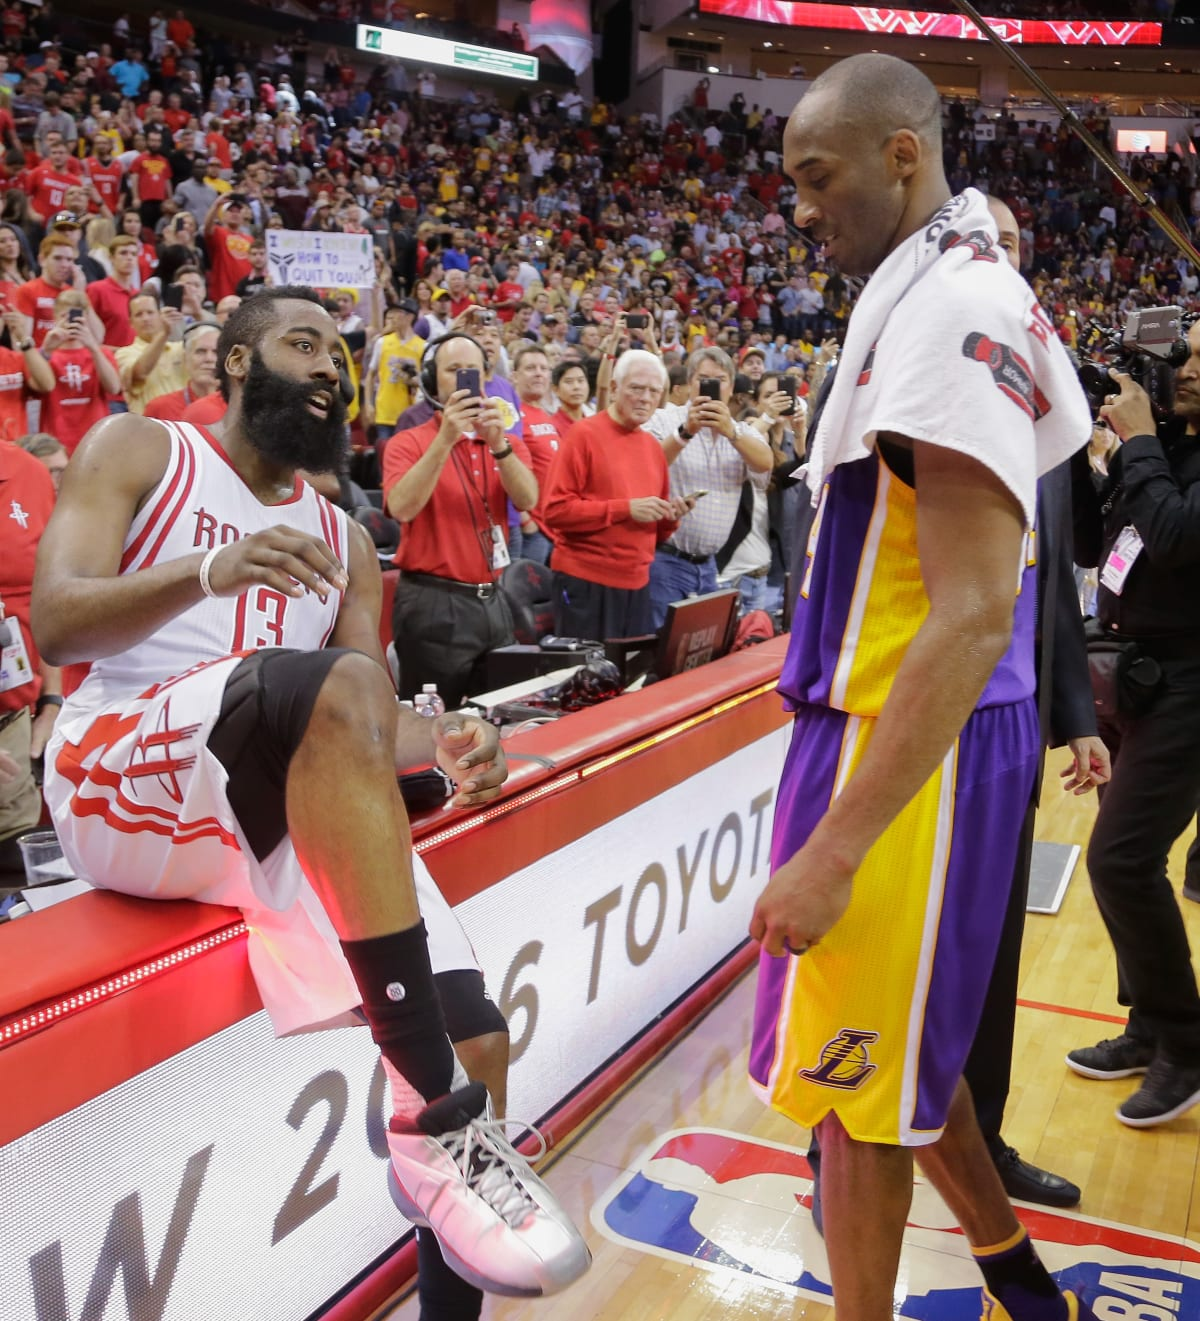 James Harden Basketball Camp: Here's Who Kobe Bryant Thinks Should Win The NBA MVP